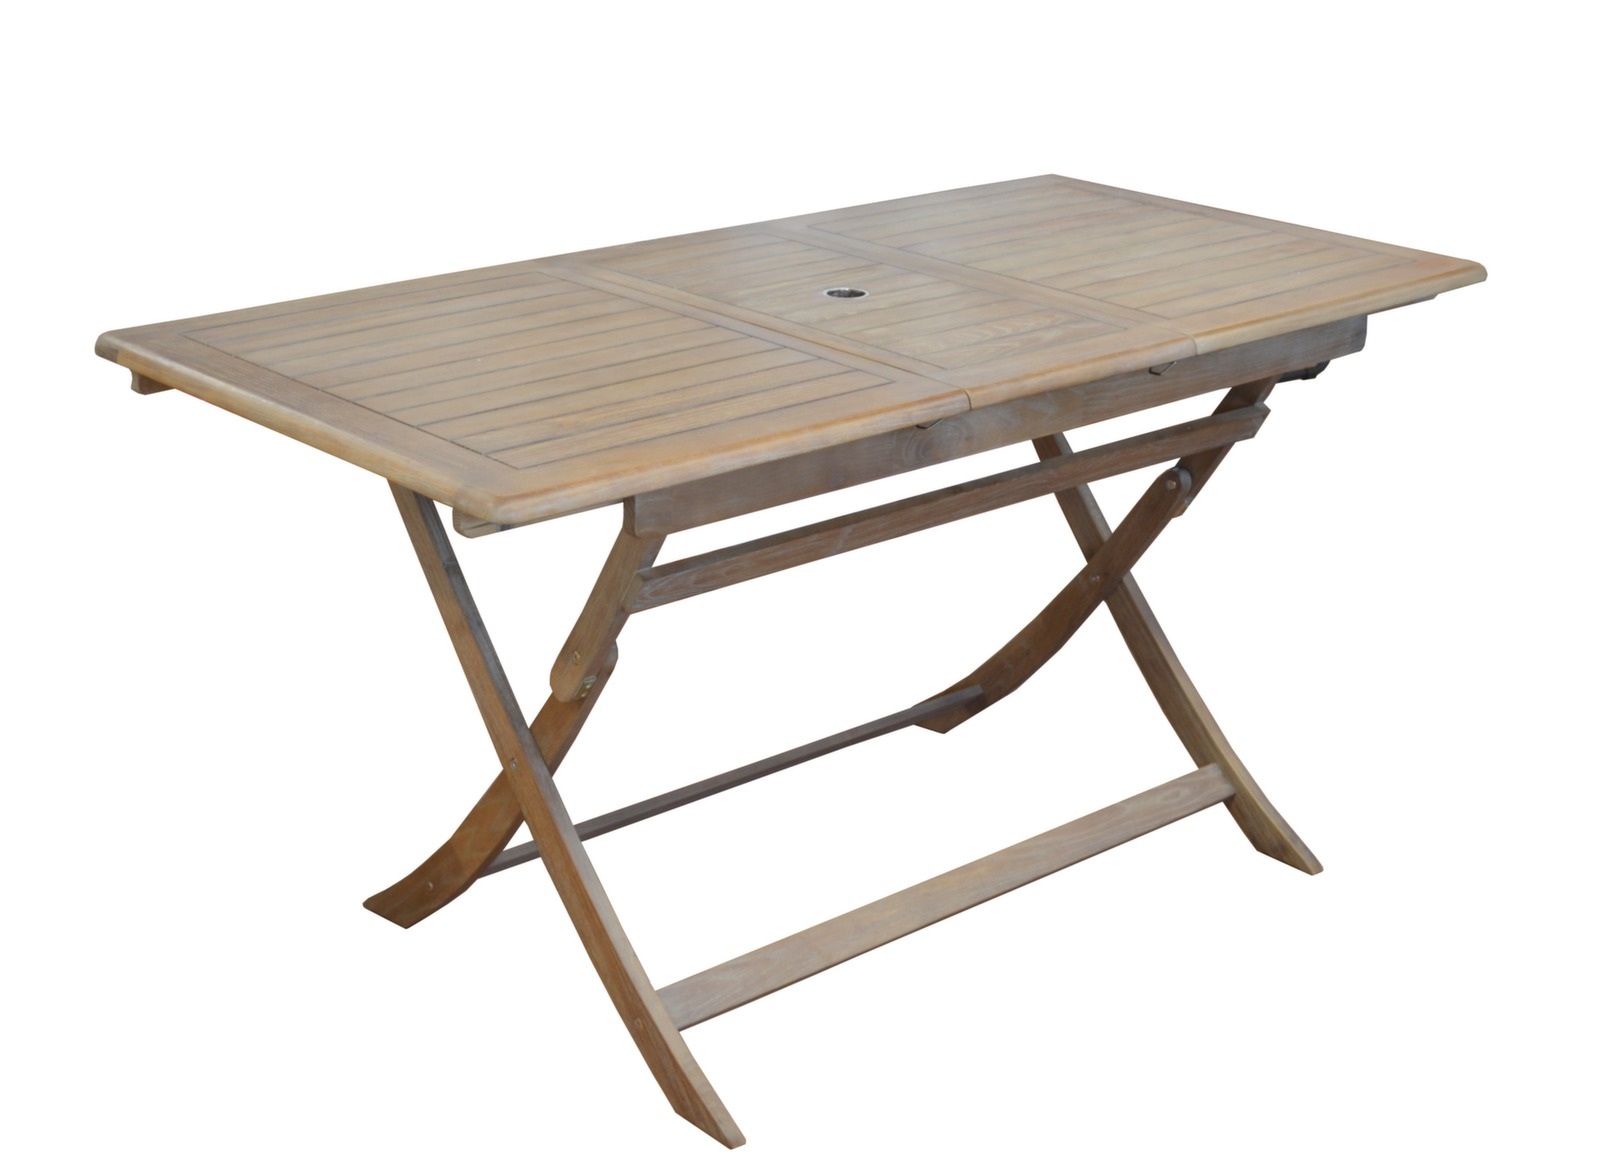 Table Theria - Tables extensibles en soldes - Mobilier de jardin